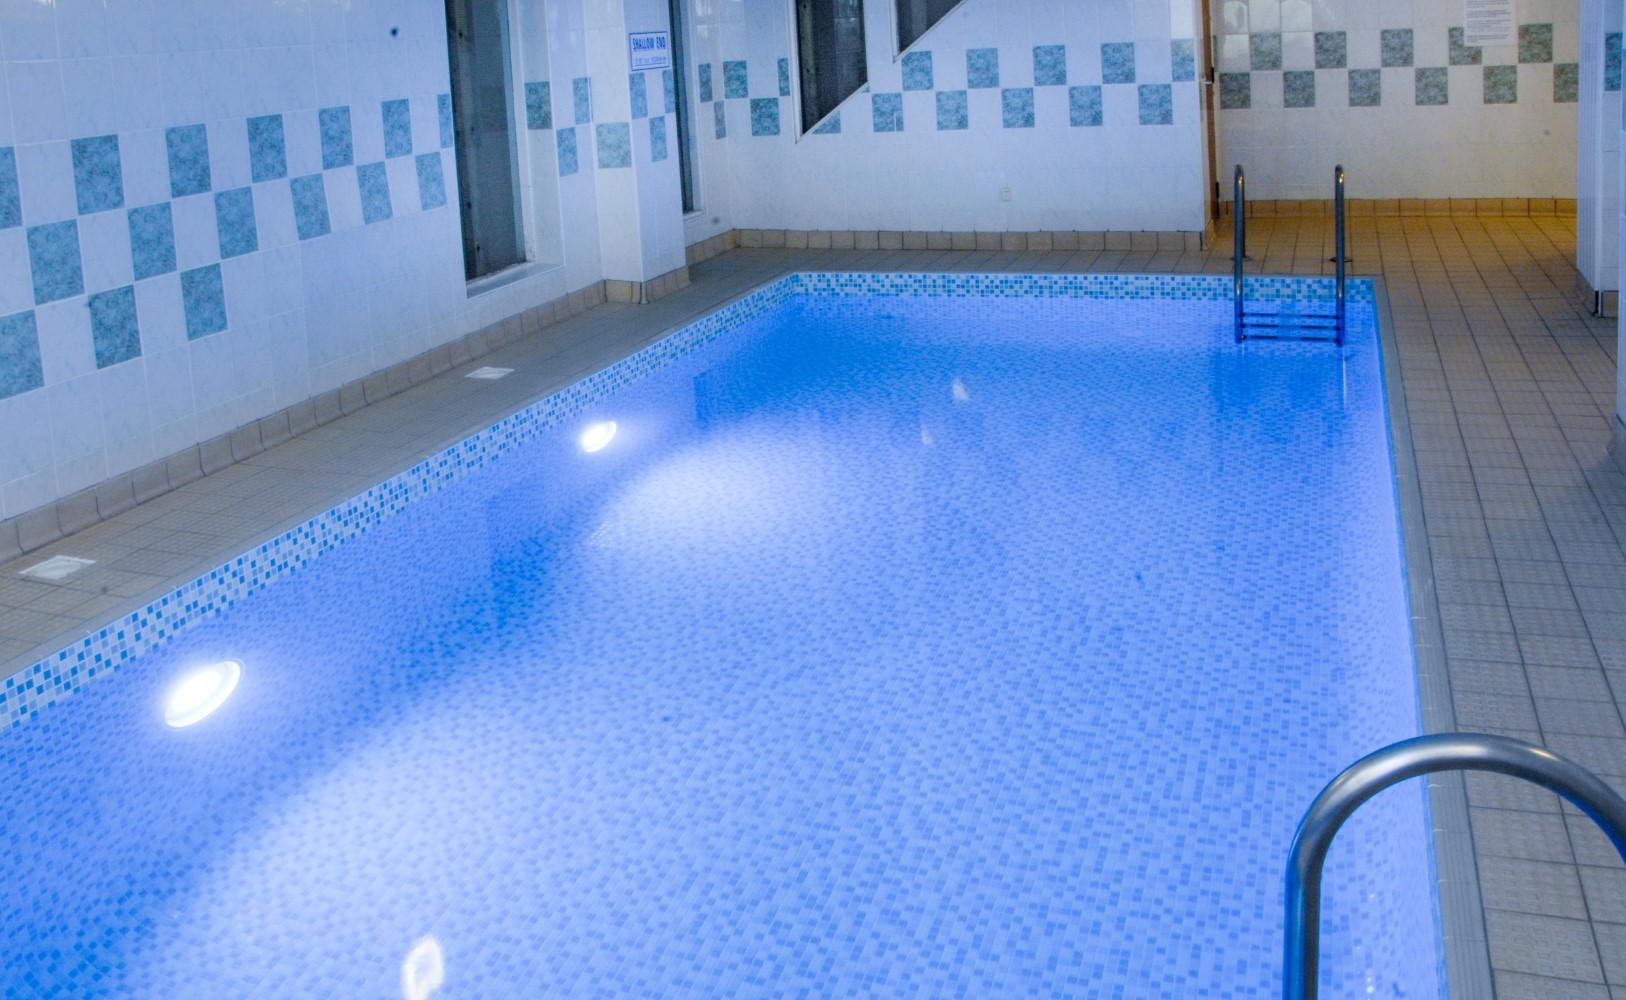 Leisure facilities new westcliff hotel bournemouth - Public swimming pools bournemouth ...